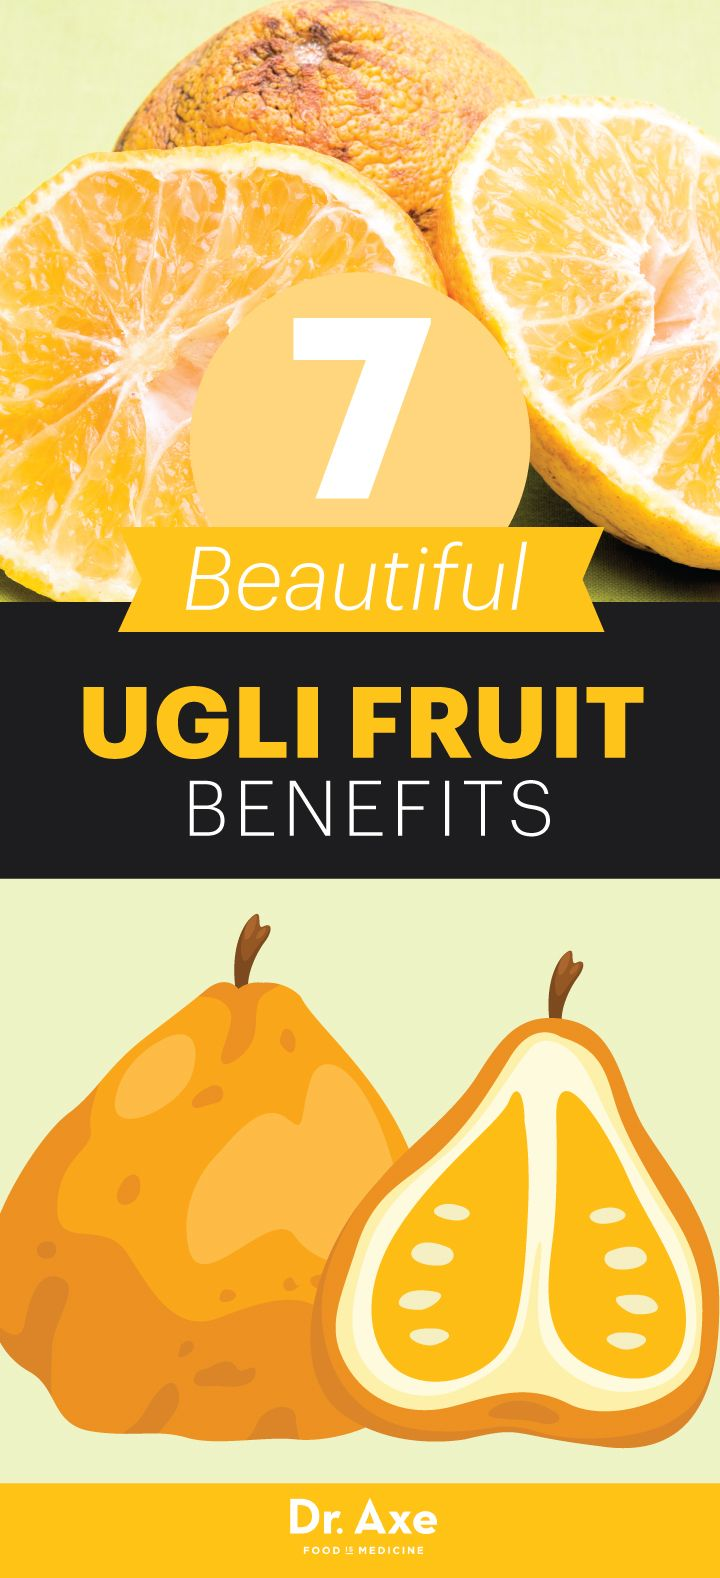 It doesn't seem very nice to name a fruit based on its appearance, but I'm going to let it slide this time with ugli fruit — because this very unattractive fruit is only ugly on the surface.